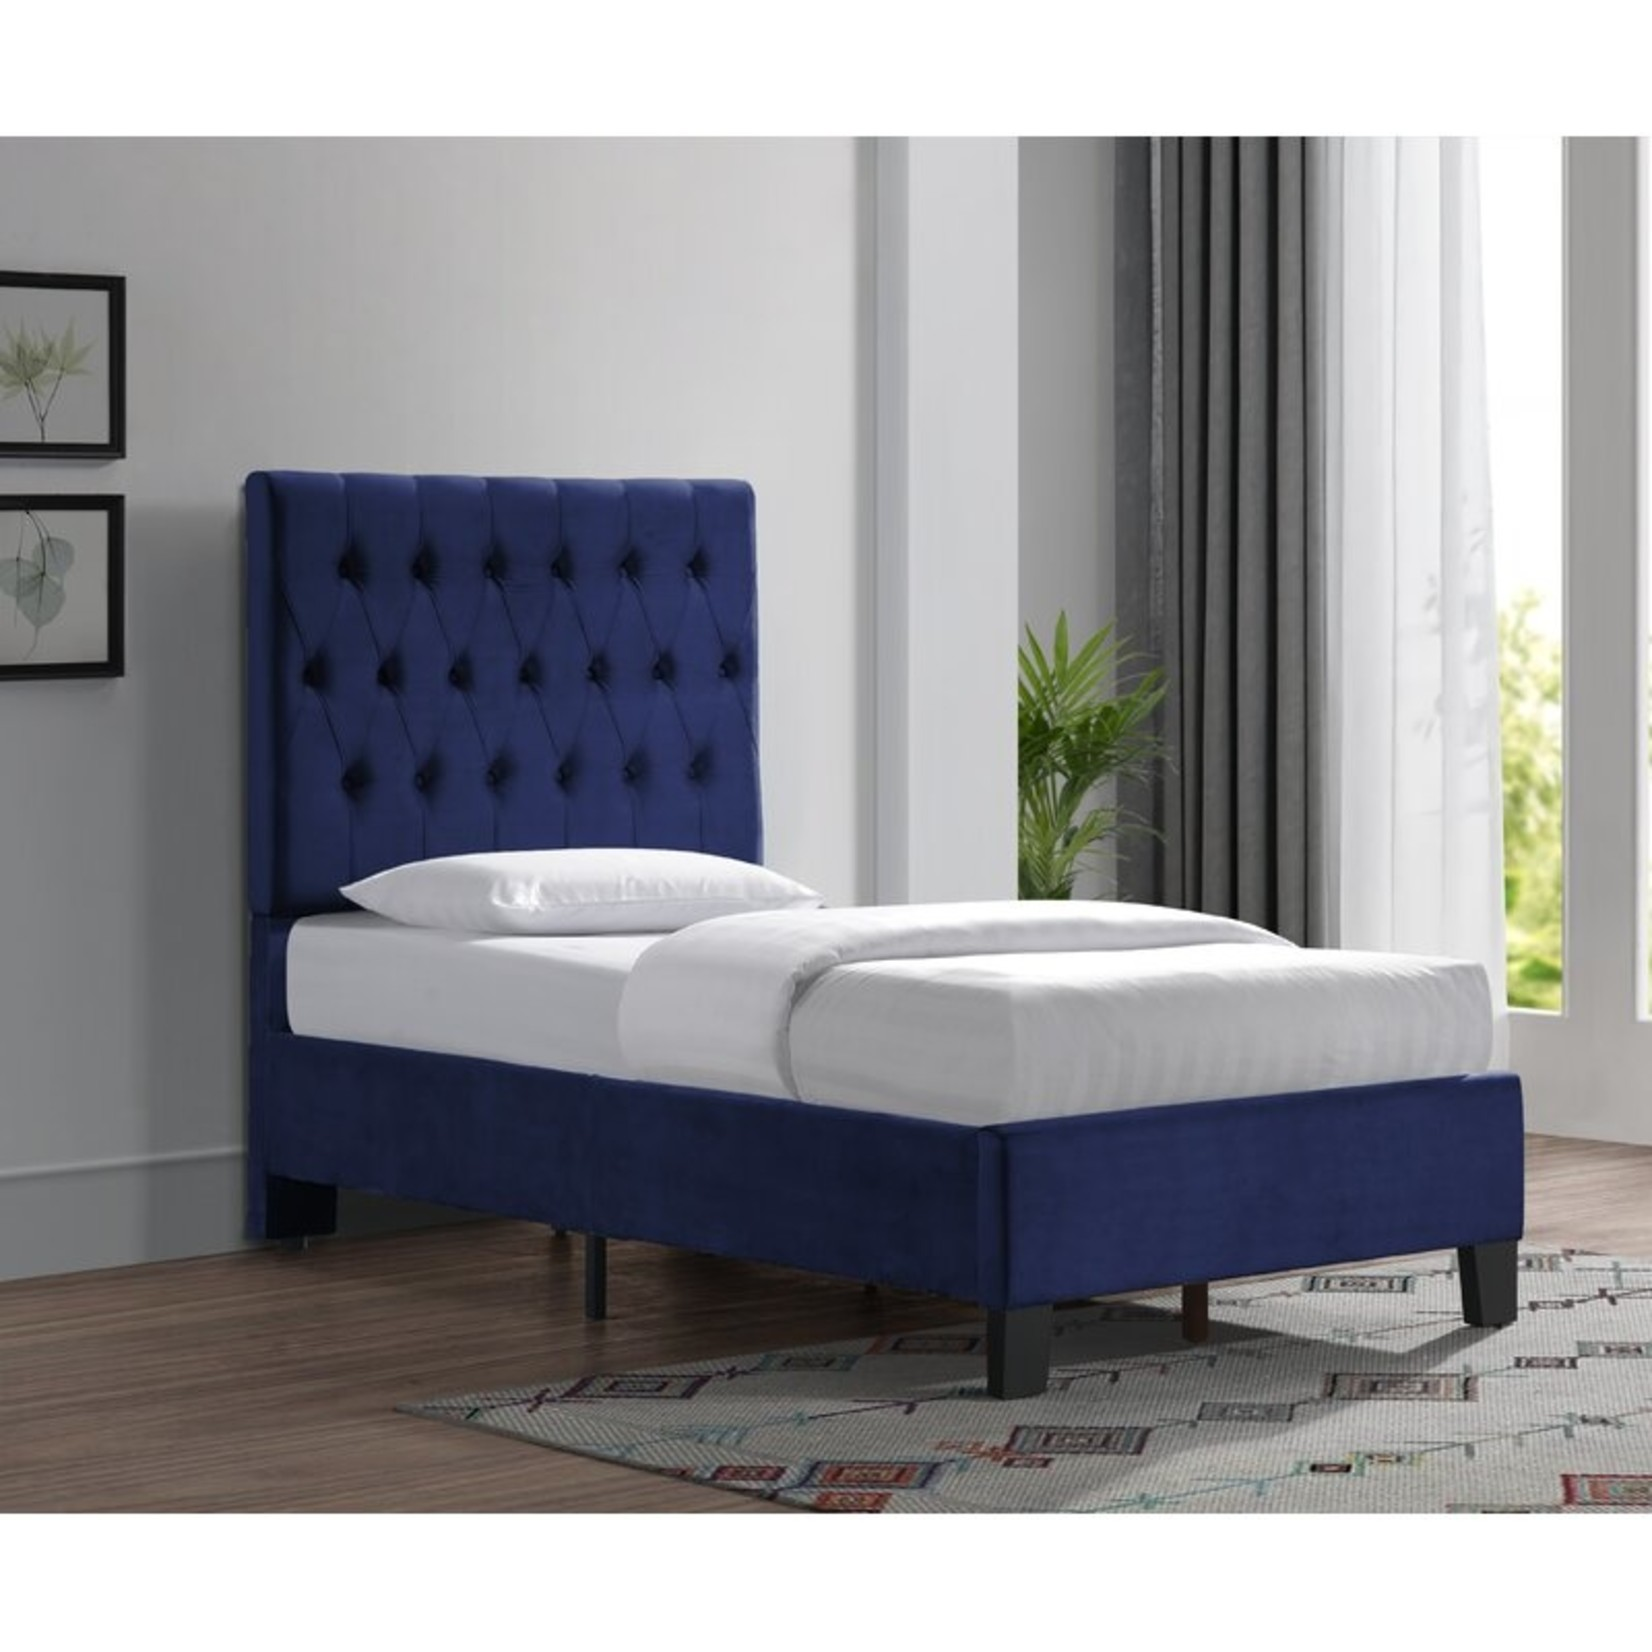 *Twin - Kayden Tufted Upholstered Low Profile Standard Bed